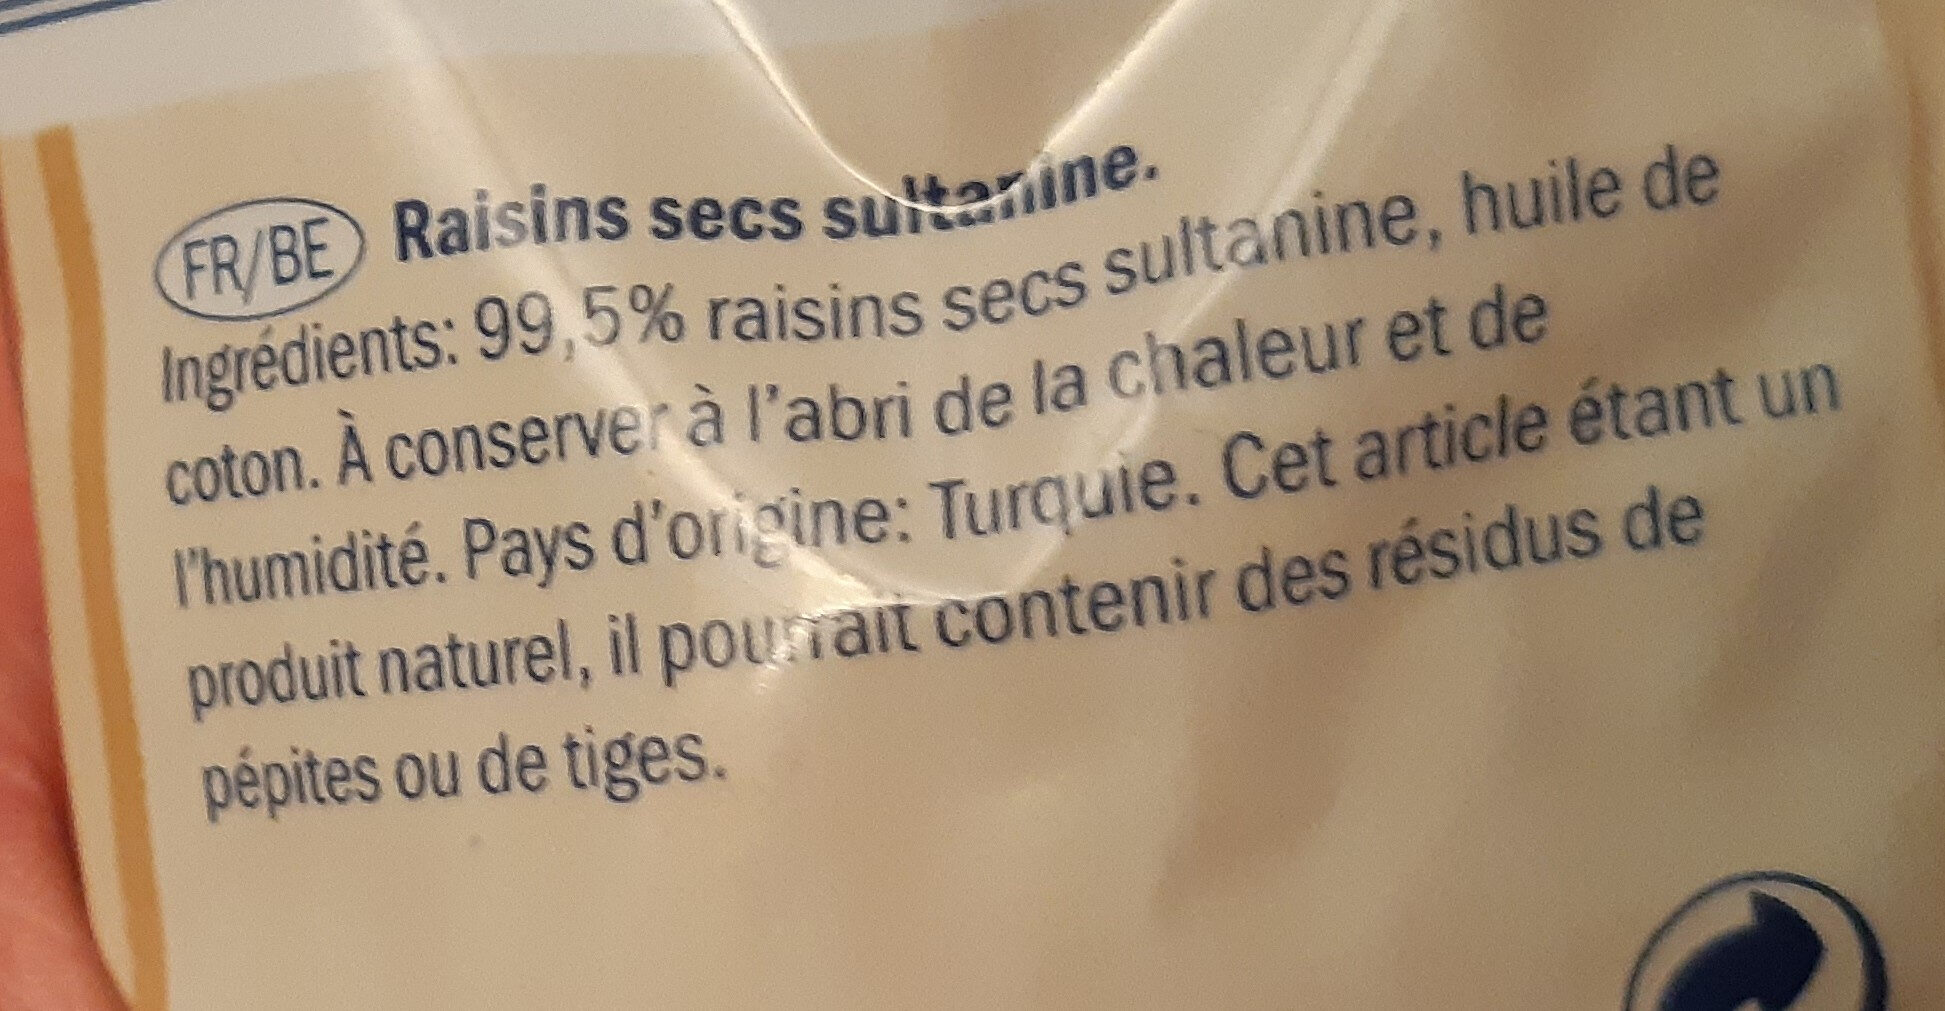 Raisins secs - Ingredients - fr